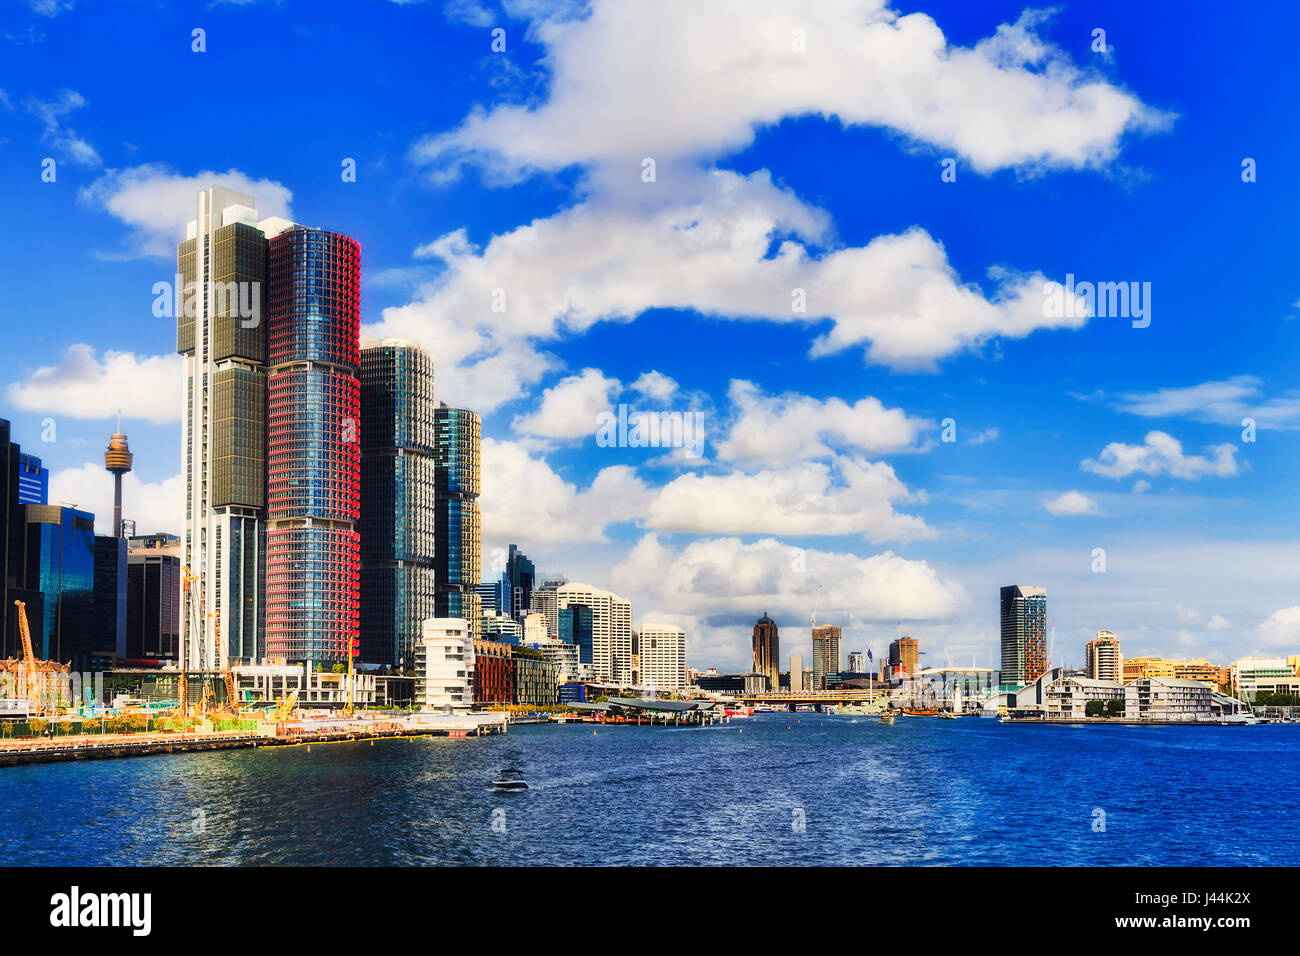 Sydney city Darling Harbour from new tall towers of Barangaroo to Pyrmont from mid Sydney harbour on a sunny day. - Stock Image